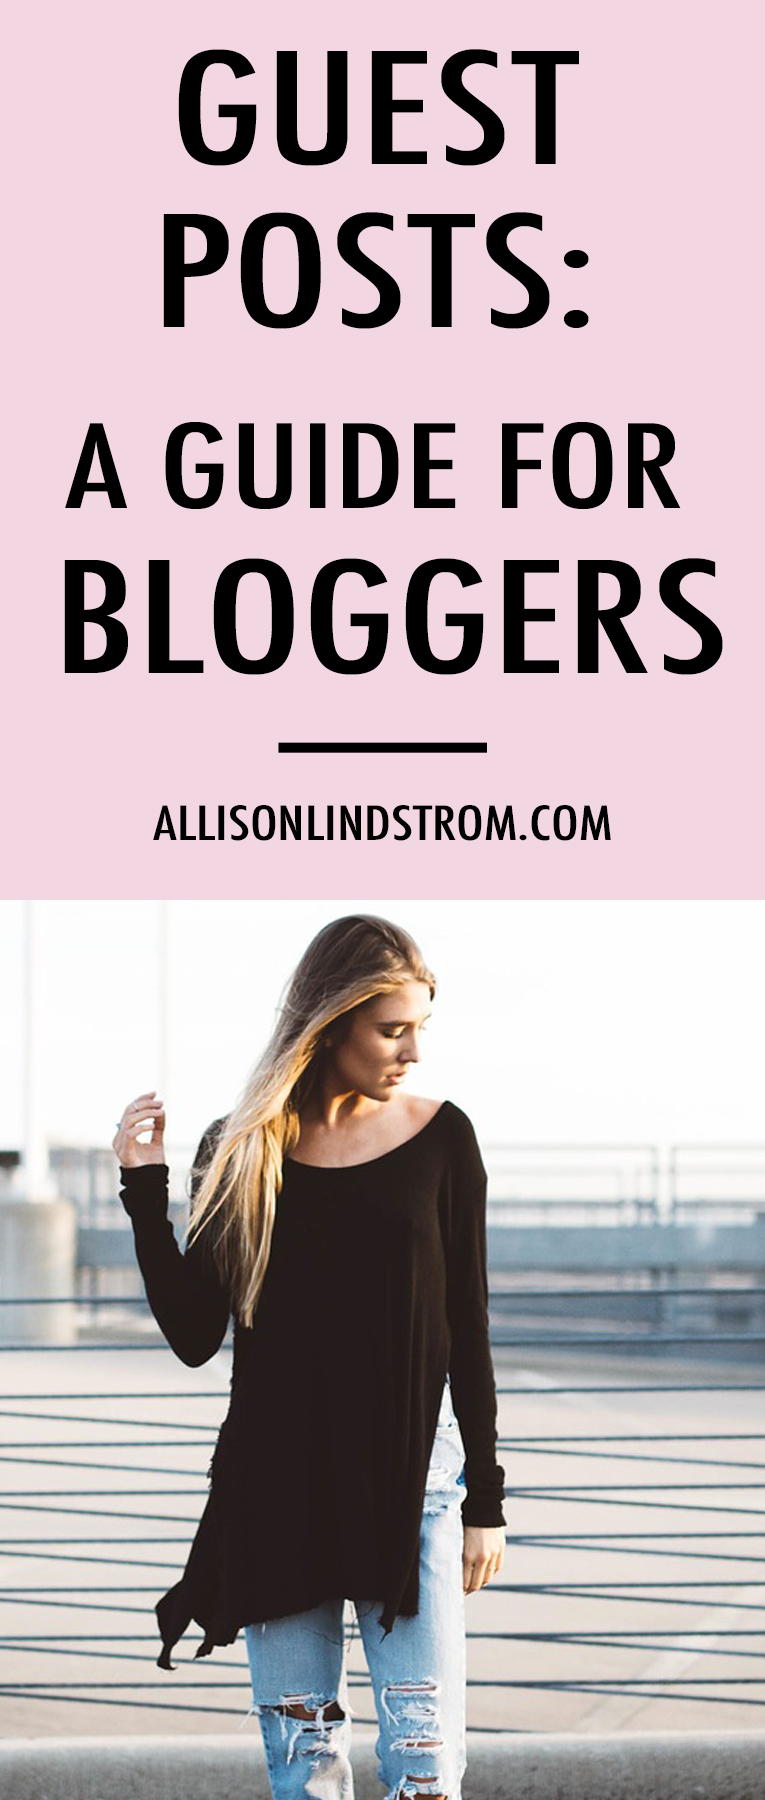 Looking for a guest post guide, with tips and ideas to enhance your postings? I've gotcha covered. Check out these 11 tips for guest blogging so you can impress your host and reap the benefits on your own site as well!